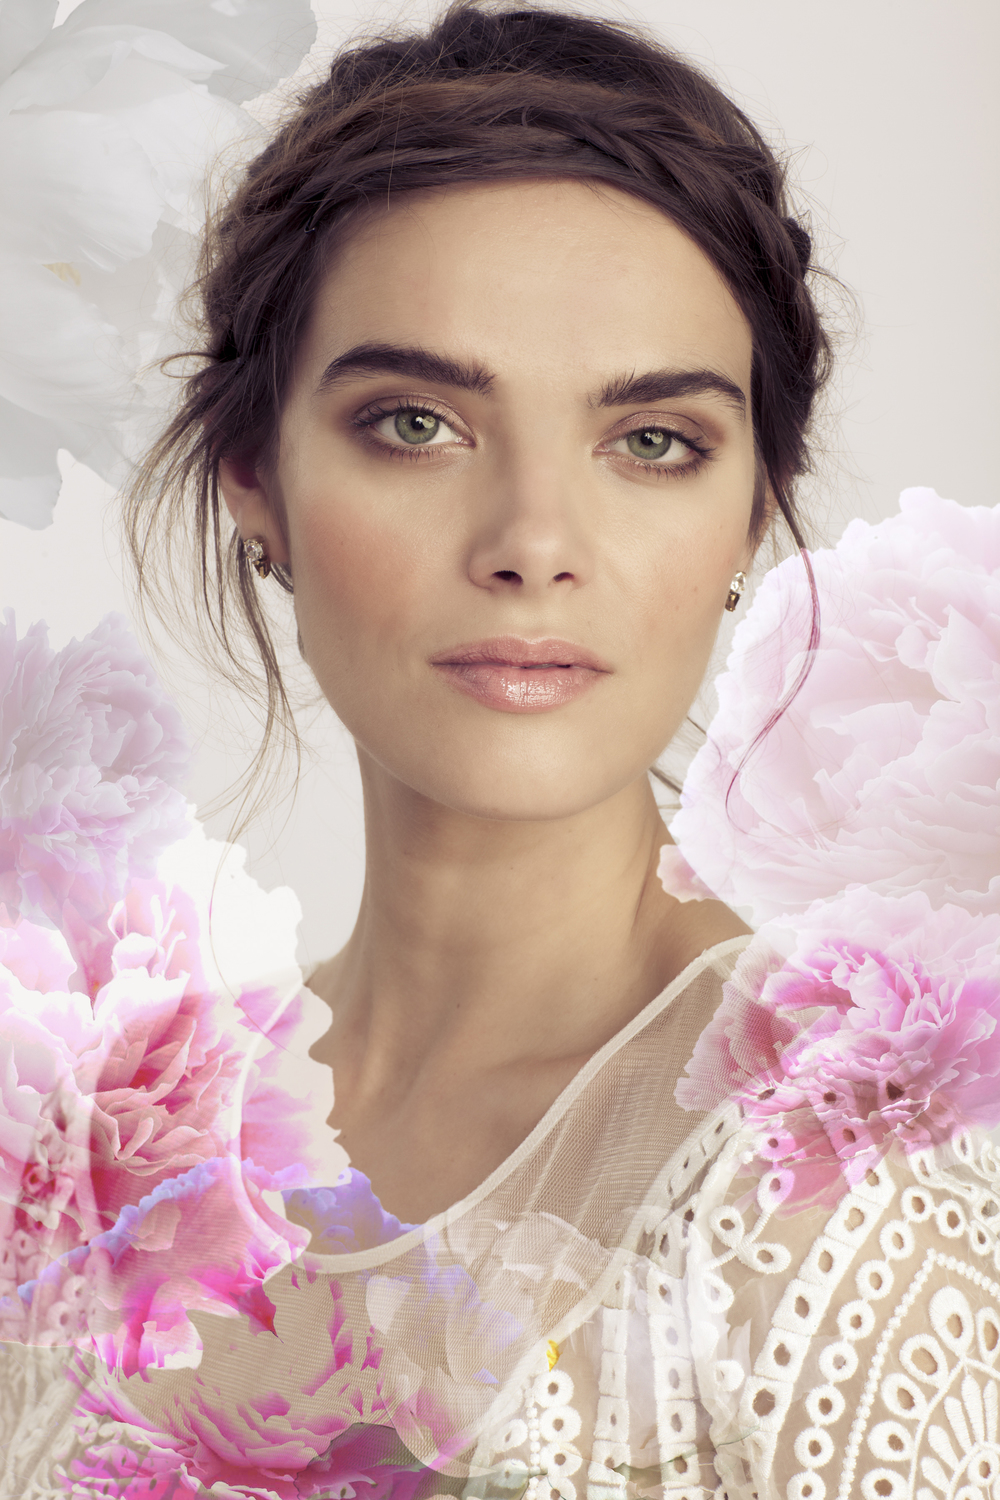 cover shot with flowers_rt3.jpg